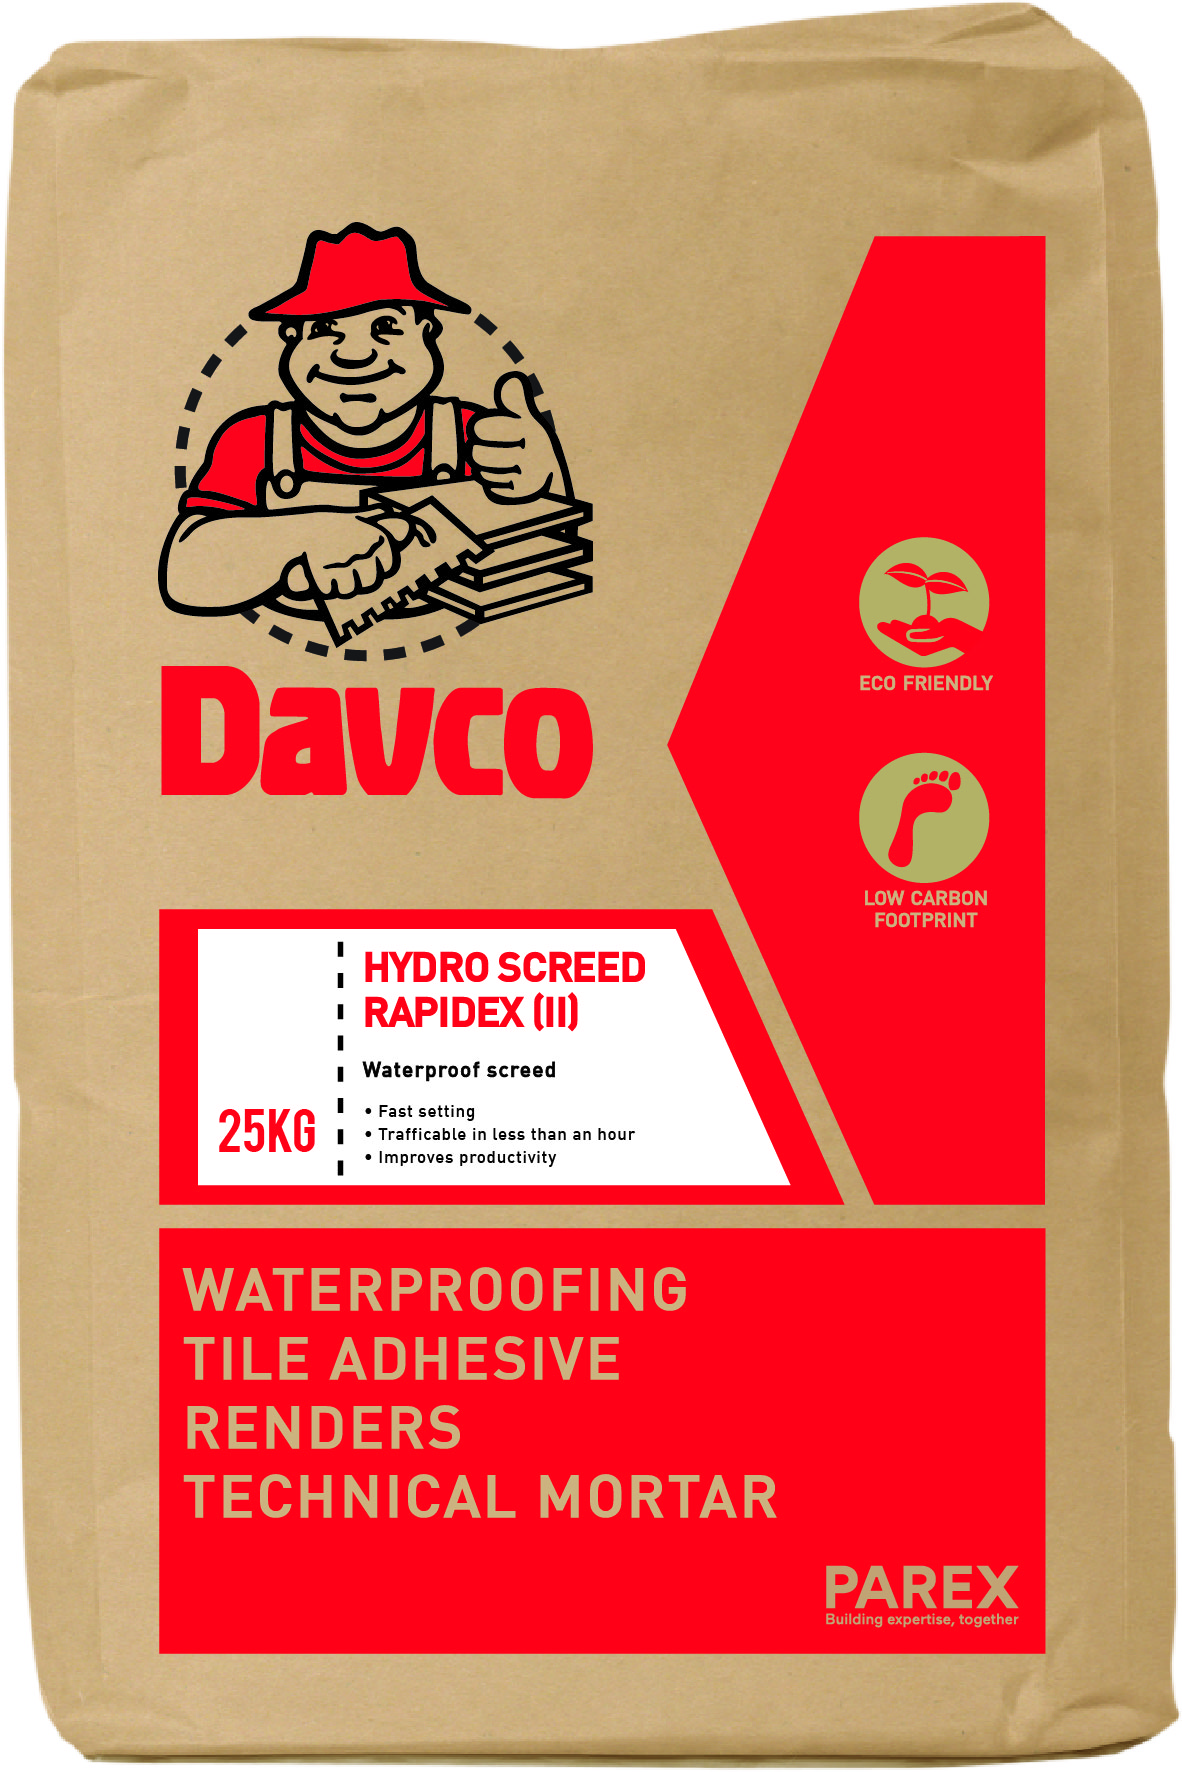 Davco Hydro Screed Rapidex (II)